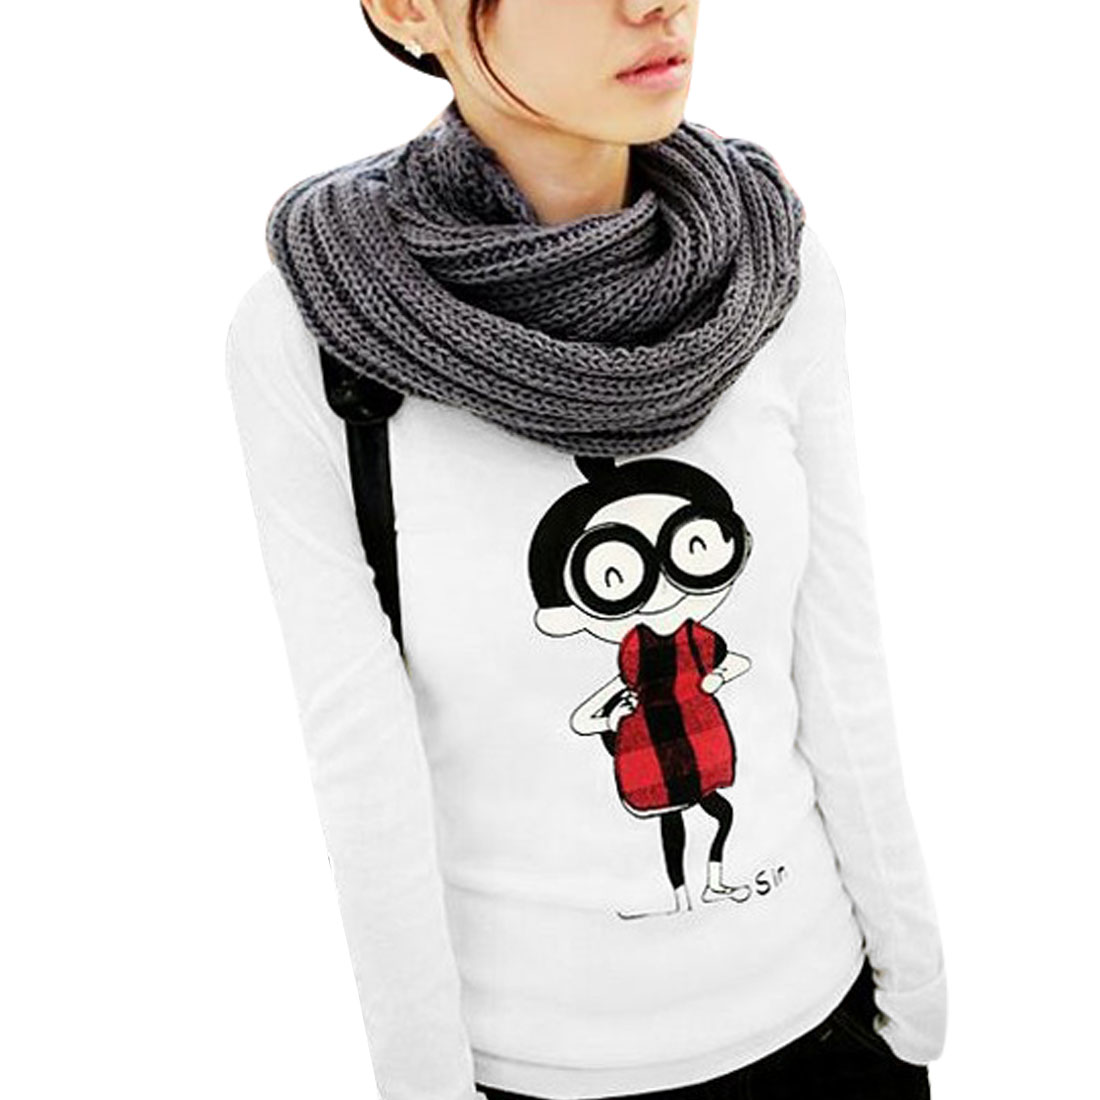 Women Cartoon Human Pattern Round Neck Long Sleeves Shirt XS